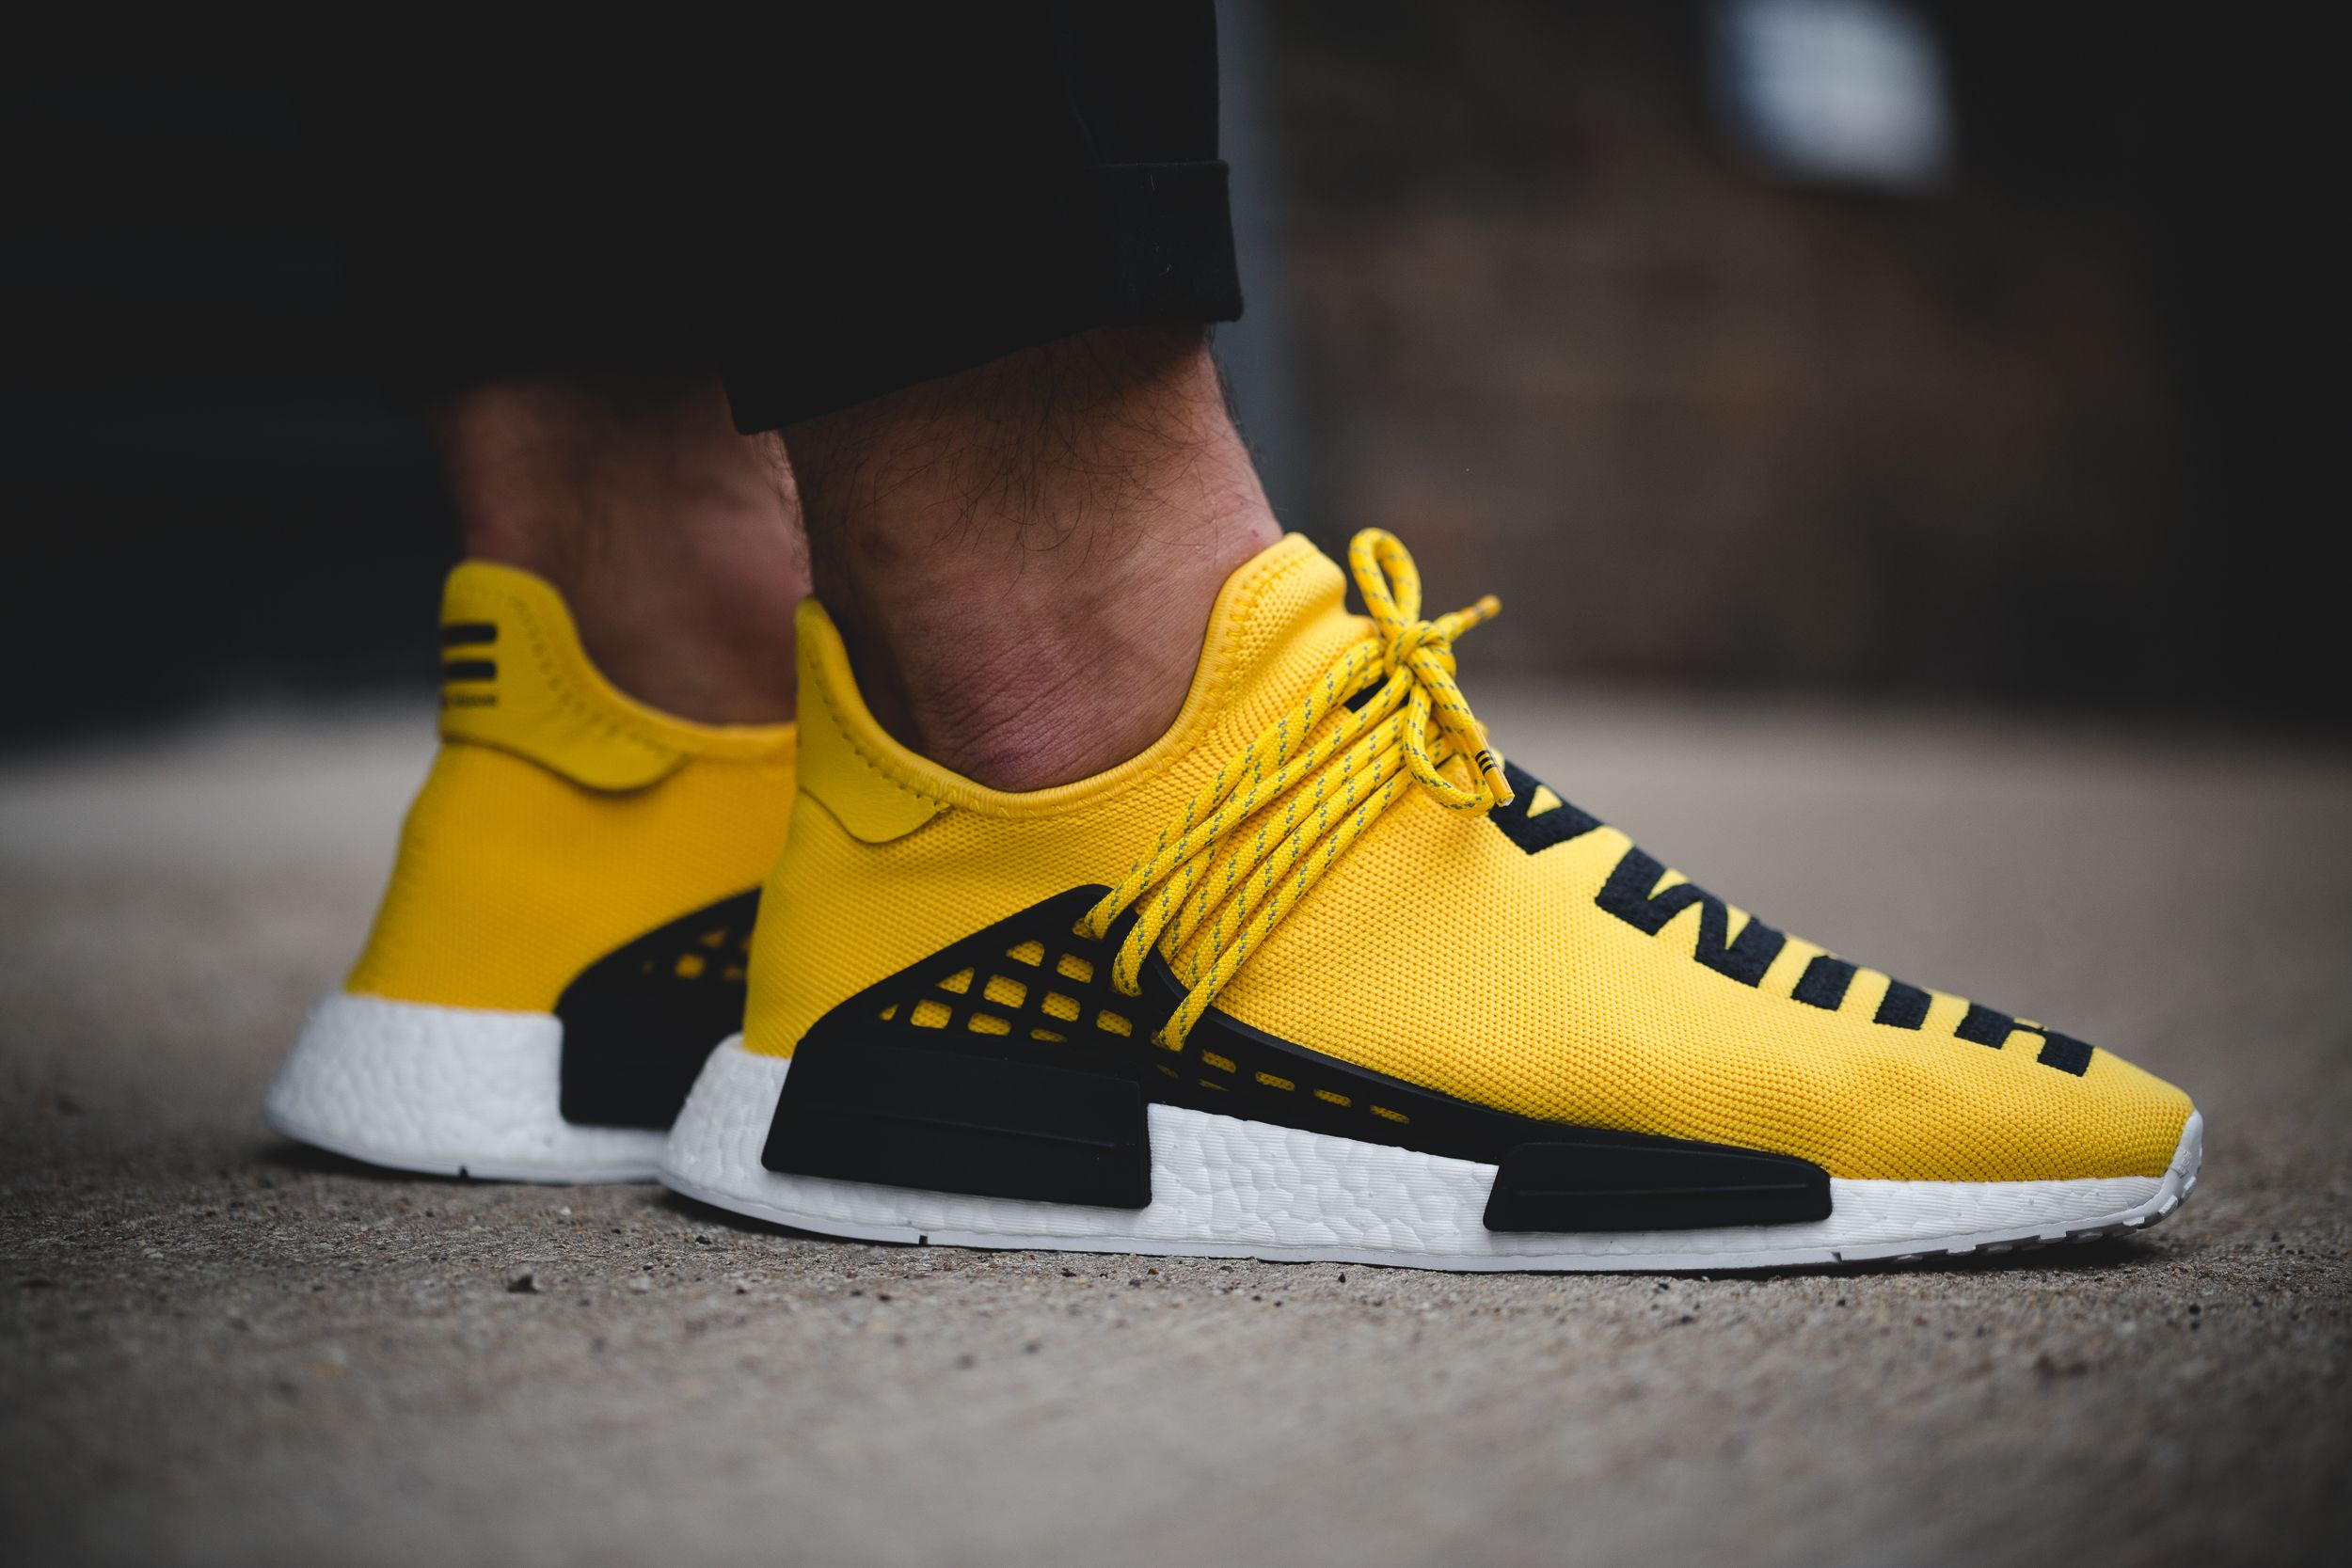 Pharrell Williams x adidas NMD 'Human Race' Releases 22.07.16 - EU Kicks